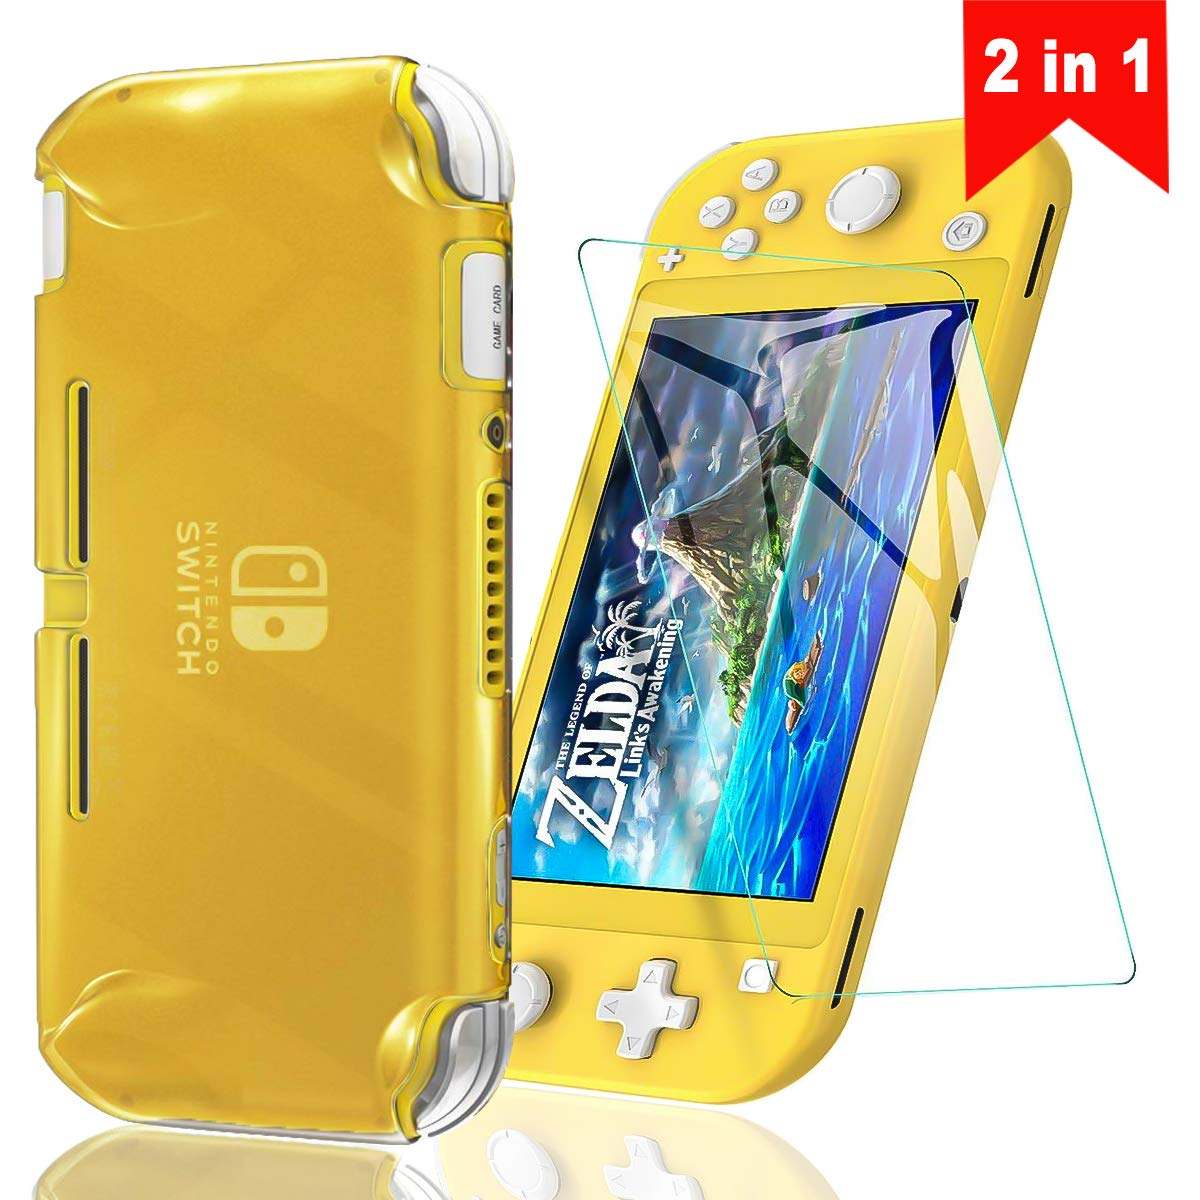 Cover Case Compatible with Nintendo Switch Lite Switch Lite Cover Case with One Tempered Glass Screen Protector Soft TPU Protective Shell Anti Scratch Switch Lite Games Accessory (Translucent Yellow)